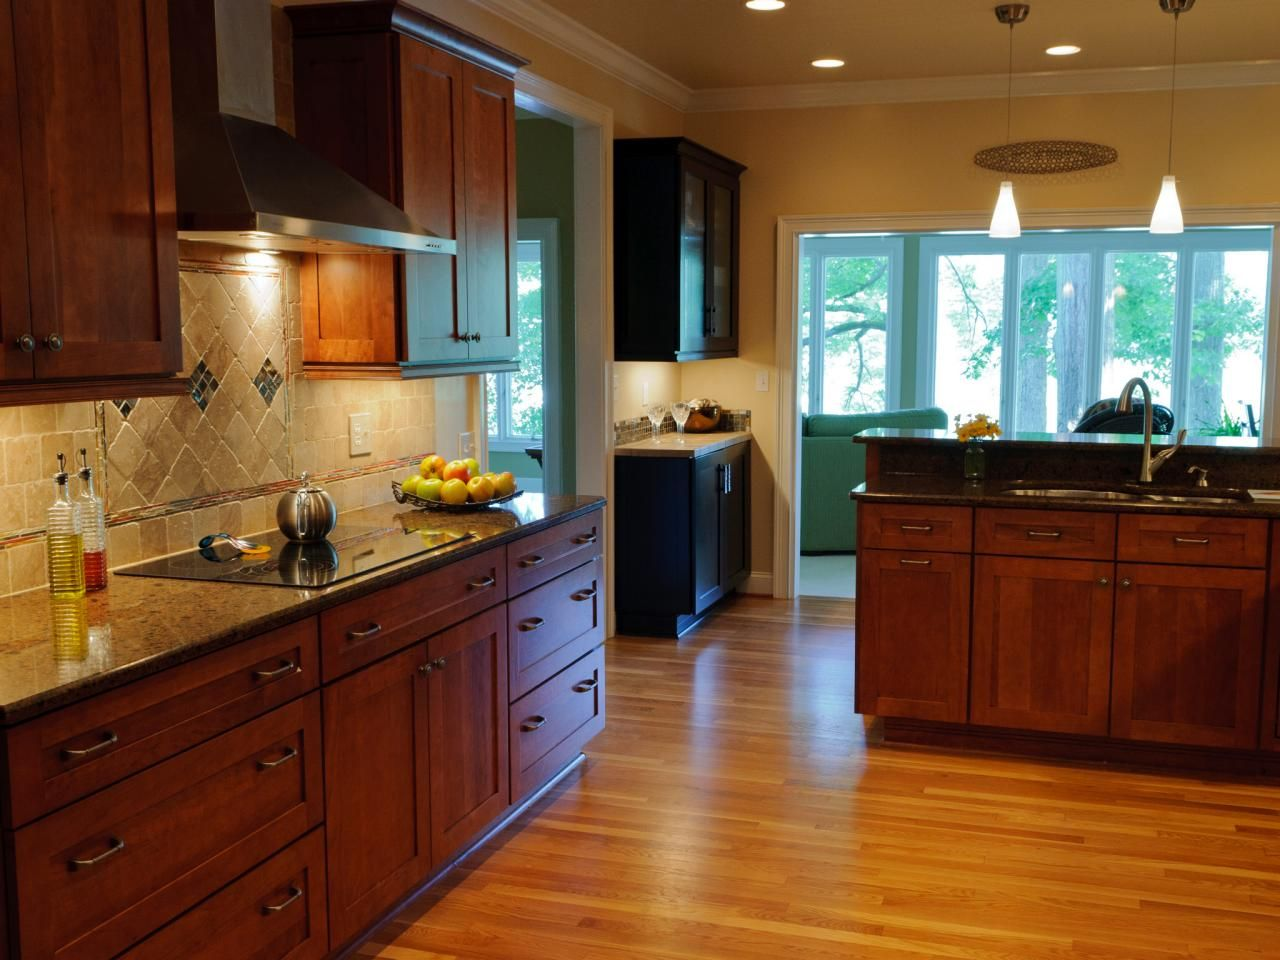 hgtv s best pictures of kitchen cabinet color ideas from top designers kitchen idea kitchen on kitchen interior cabinets id=38182